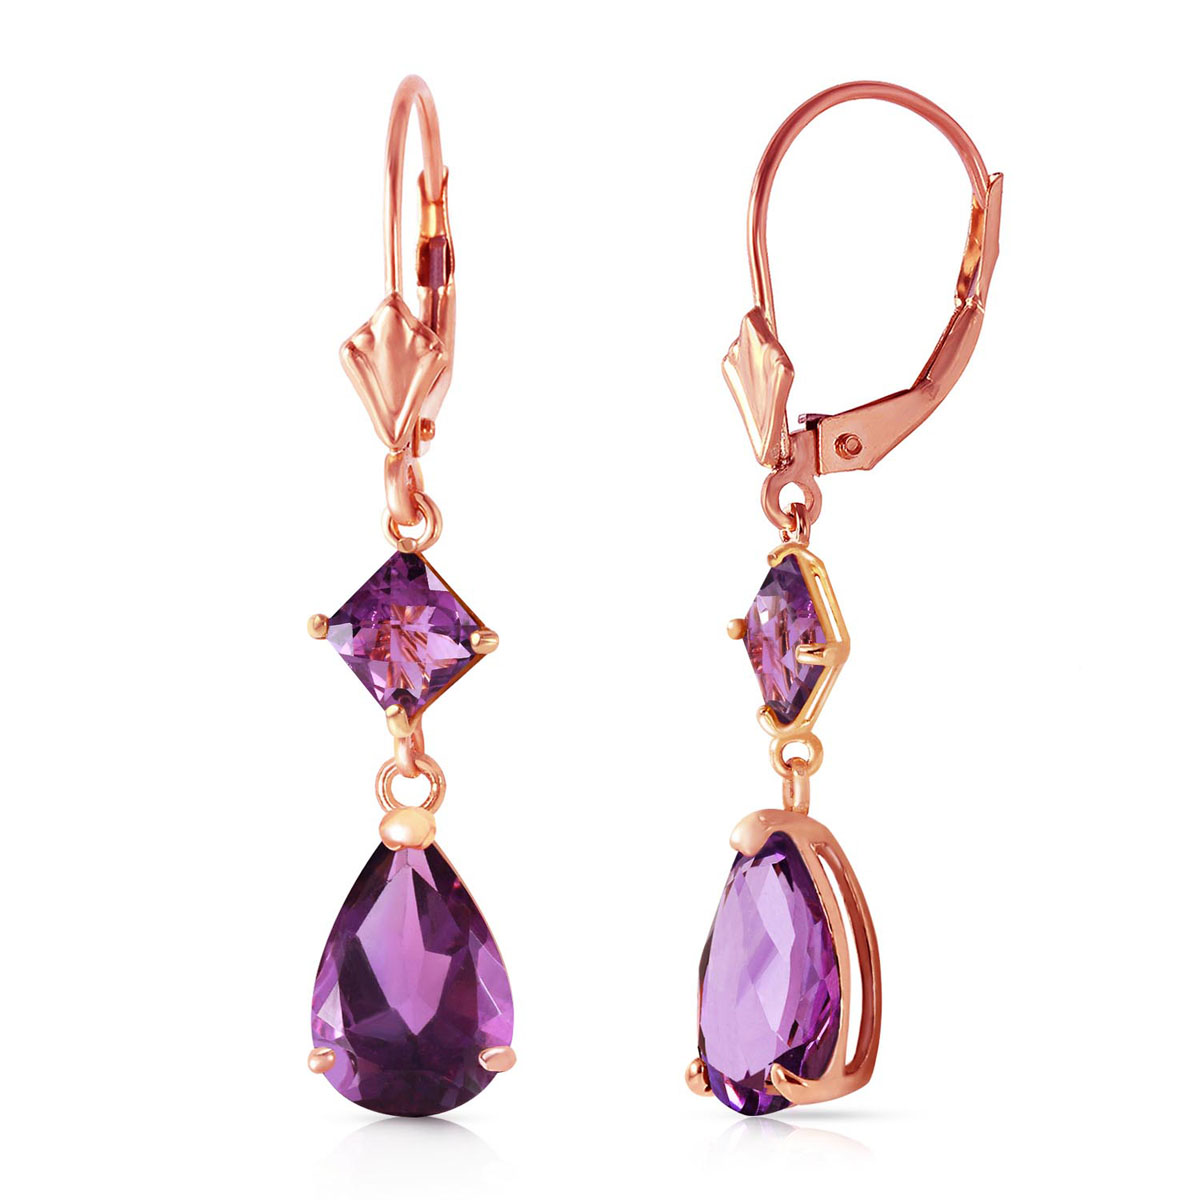 Amethyst Droplet Earrings 4.5 ctw in 9ct Rose Gold